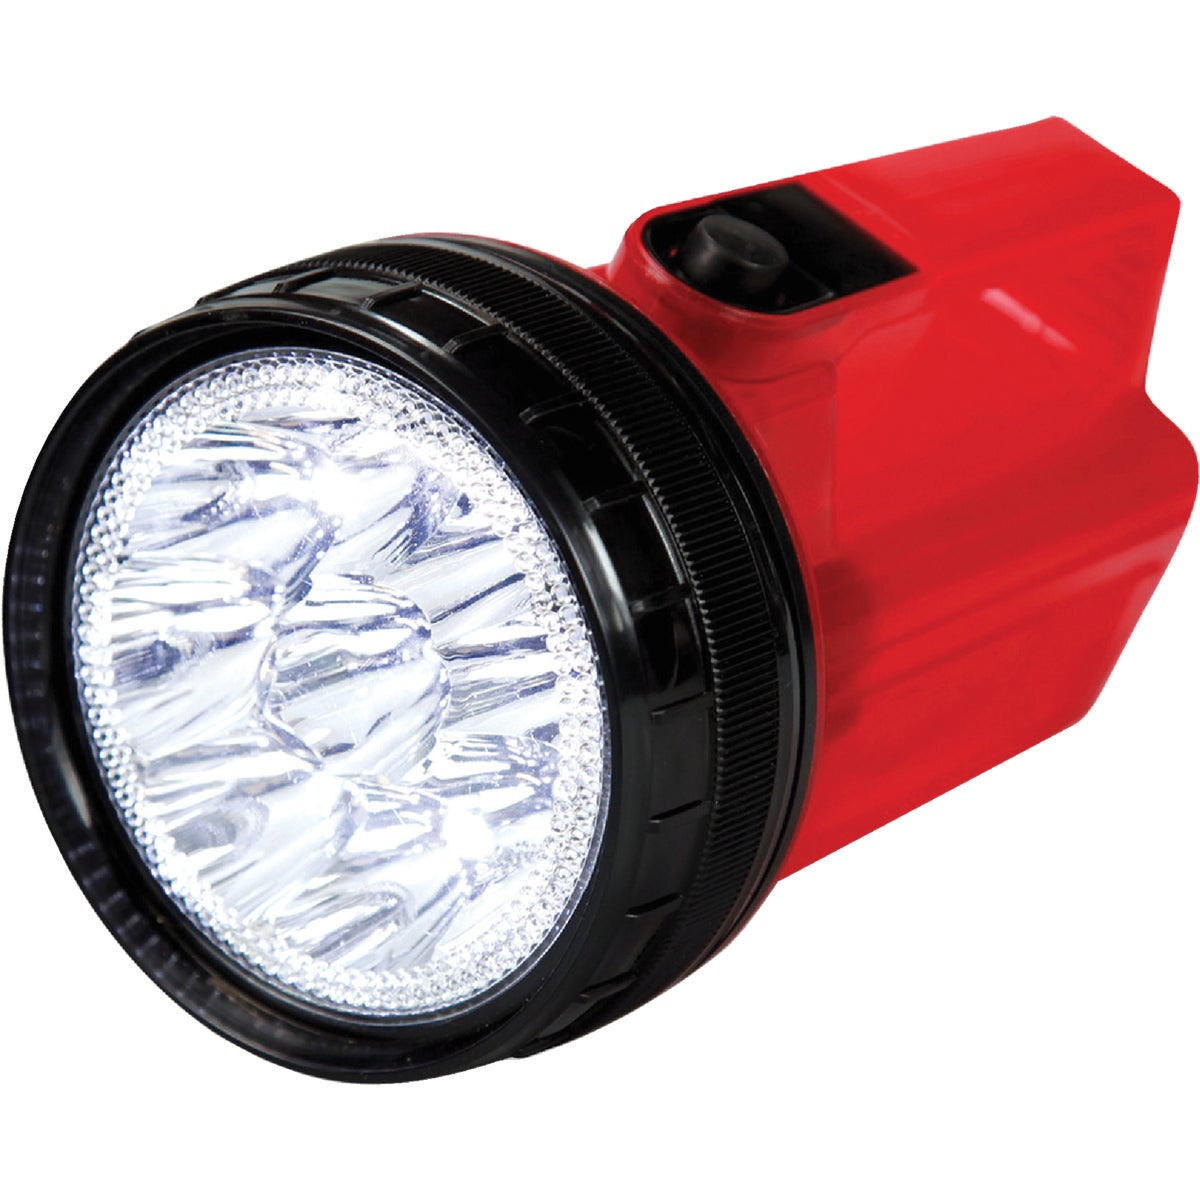 Life Gear 4 in 1 Glow LED Spotlight with Storage, Red/Red